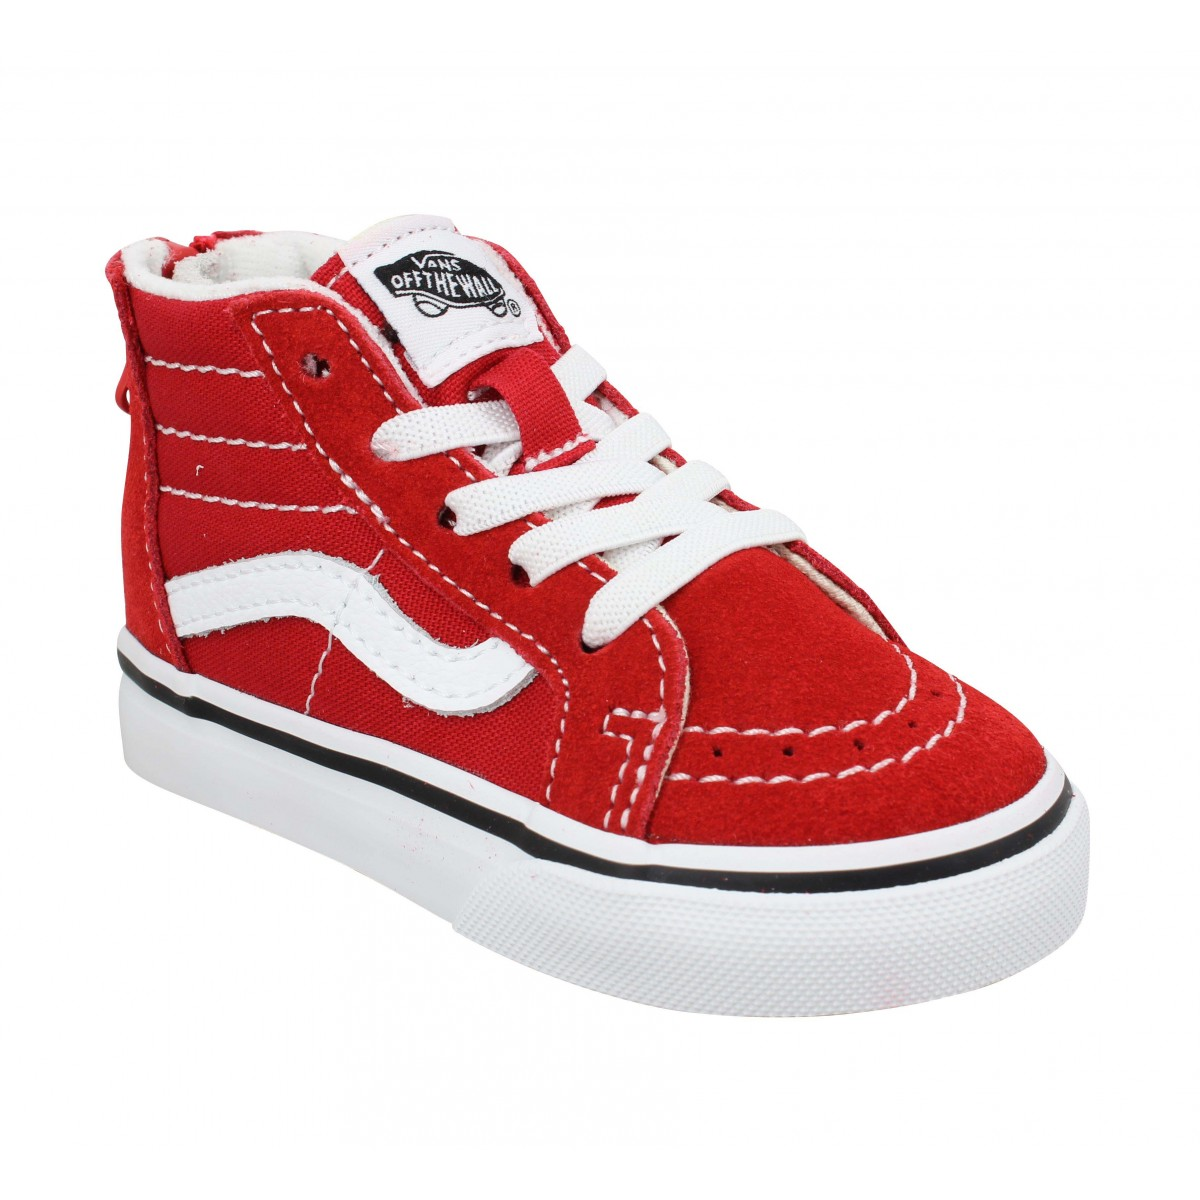 Baskets VANS SK8 Hi Zip velours toile Enfant Racing Red